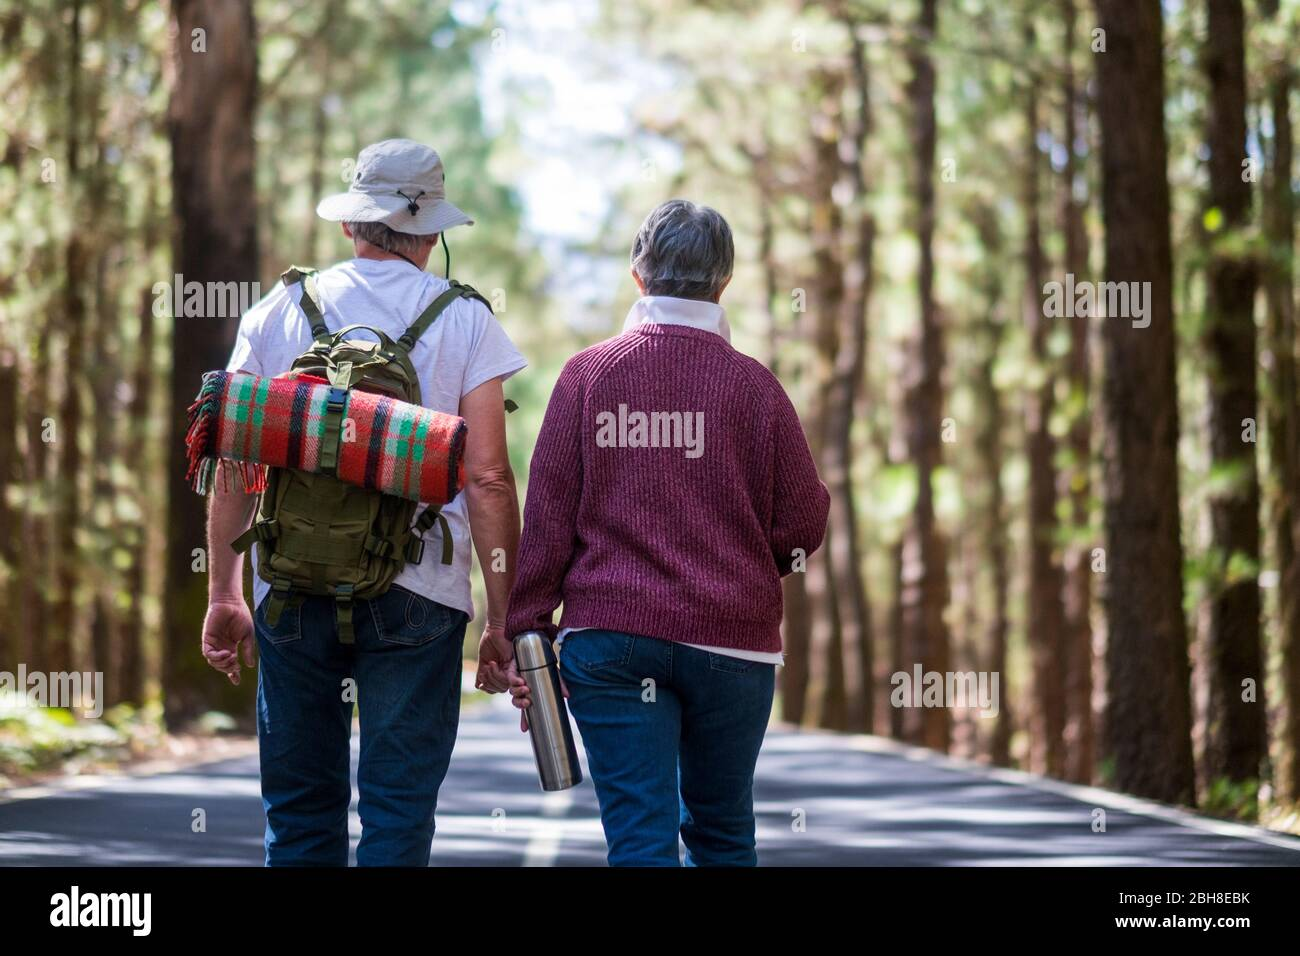 Free High Resolution Stock Photography And Images Alamy